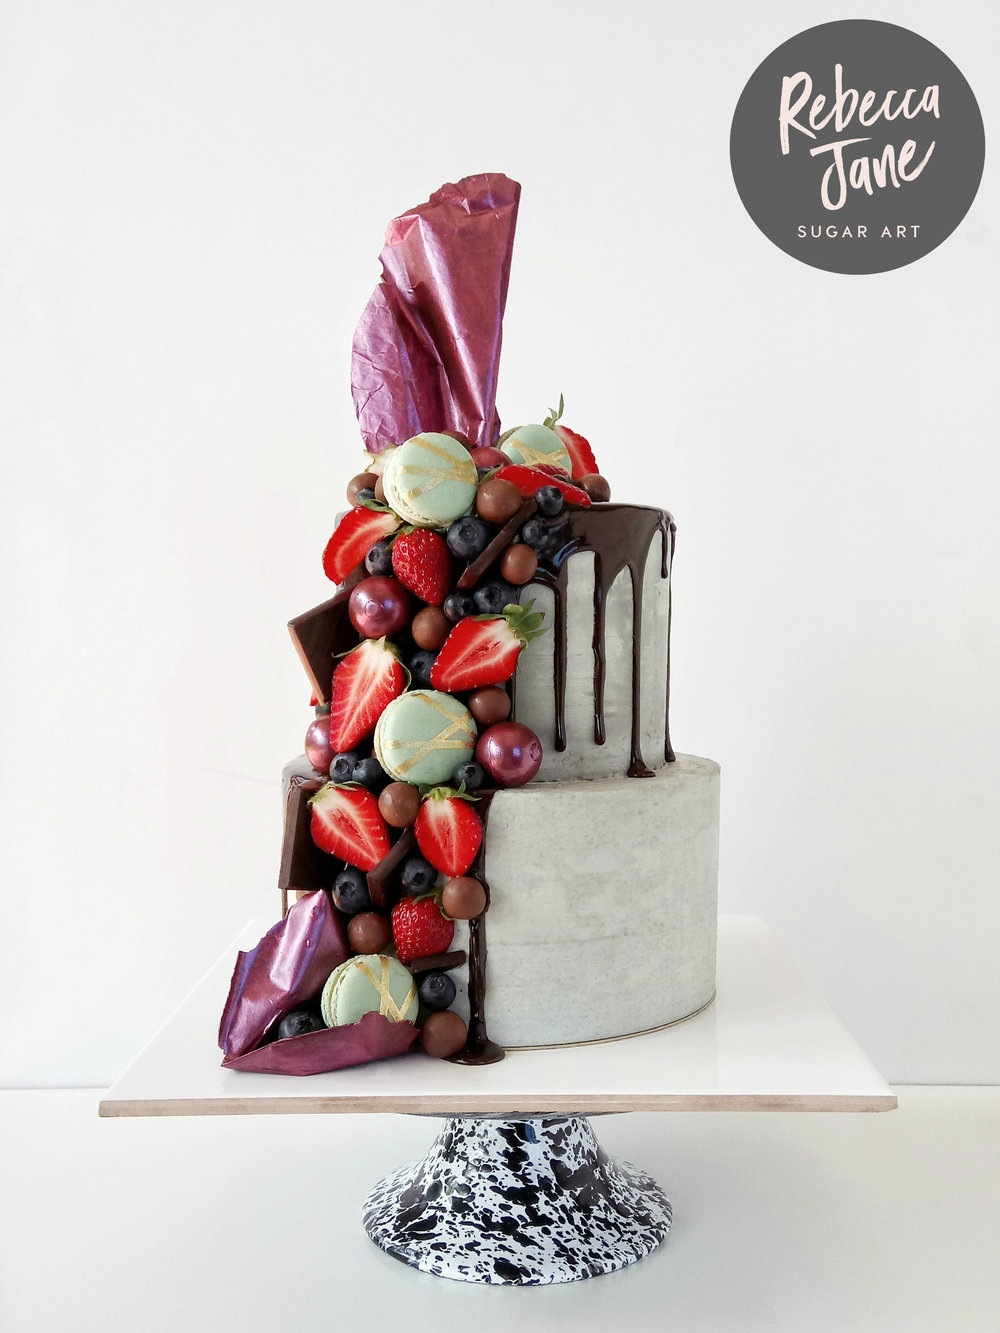 Rebecca Jane Sugar Art - Concrete buttercream berry chocolate drip cake